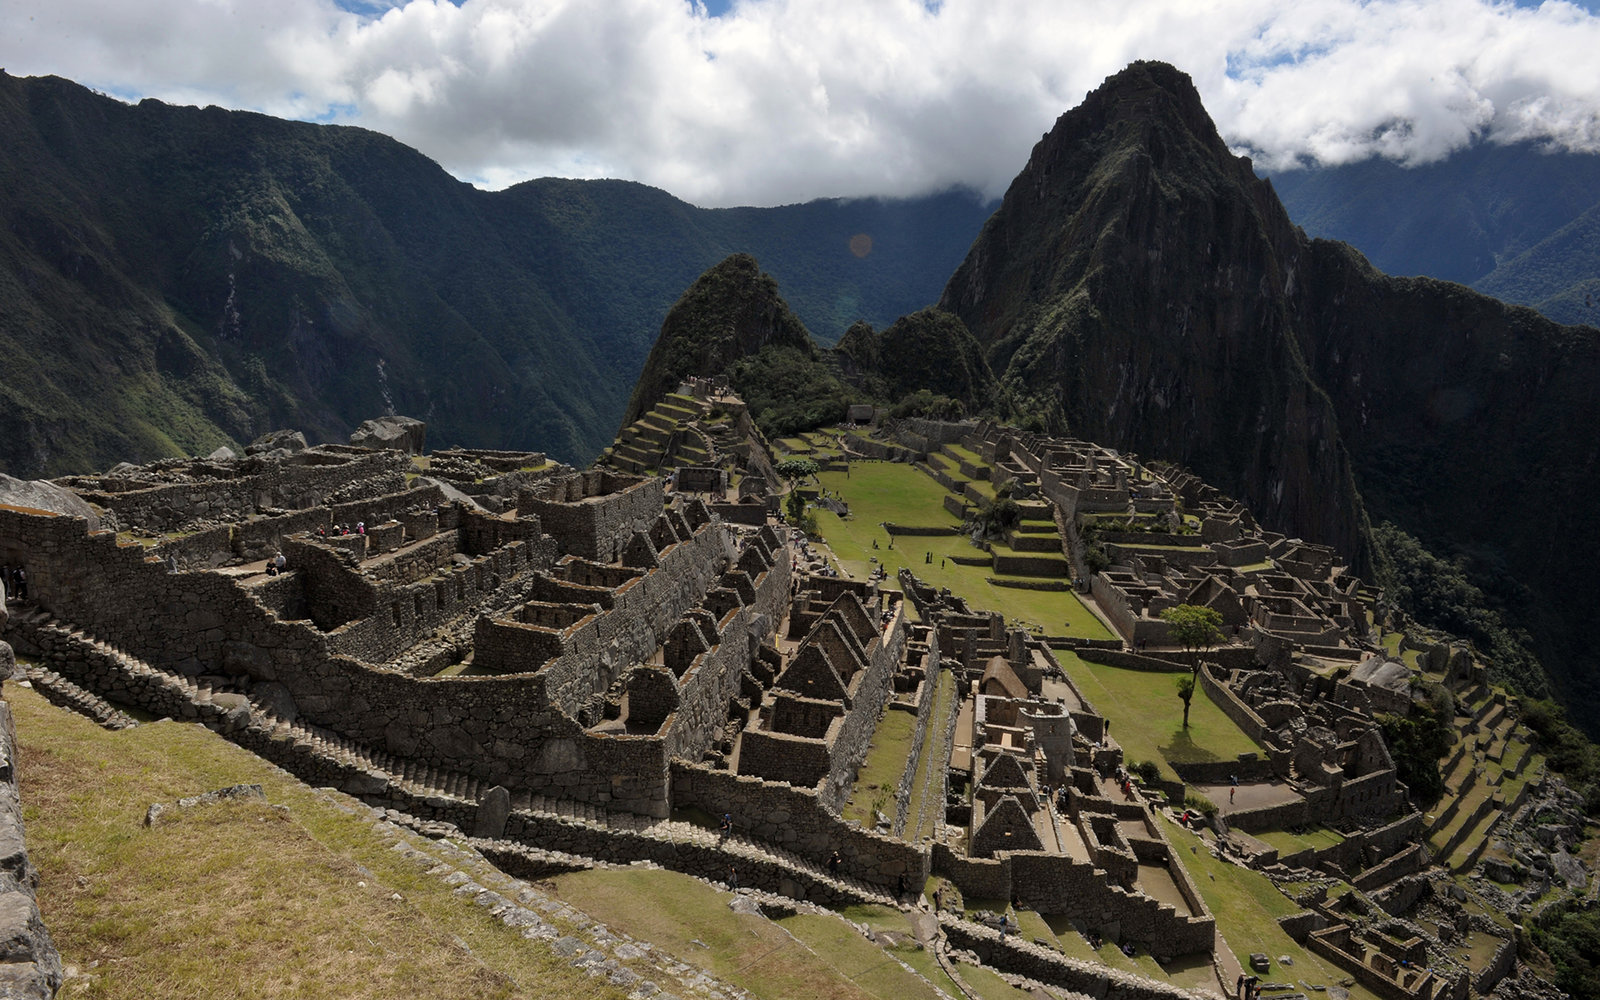 General view of the Machu Picchu citadel, on July 5, 2011. The Inca citadel is being prepared for the centennial commemoration of its discovery by American adventurer and archaeologist Hiram Bingham in 1911. The compound, which sits at 2,350 meters above